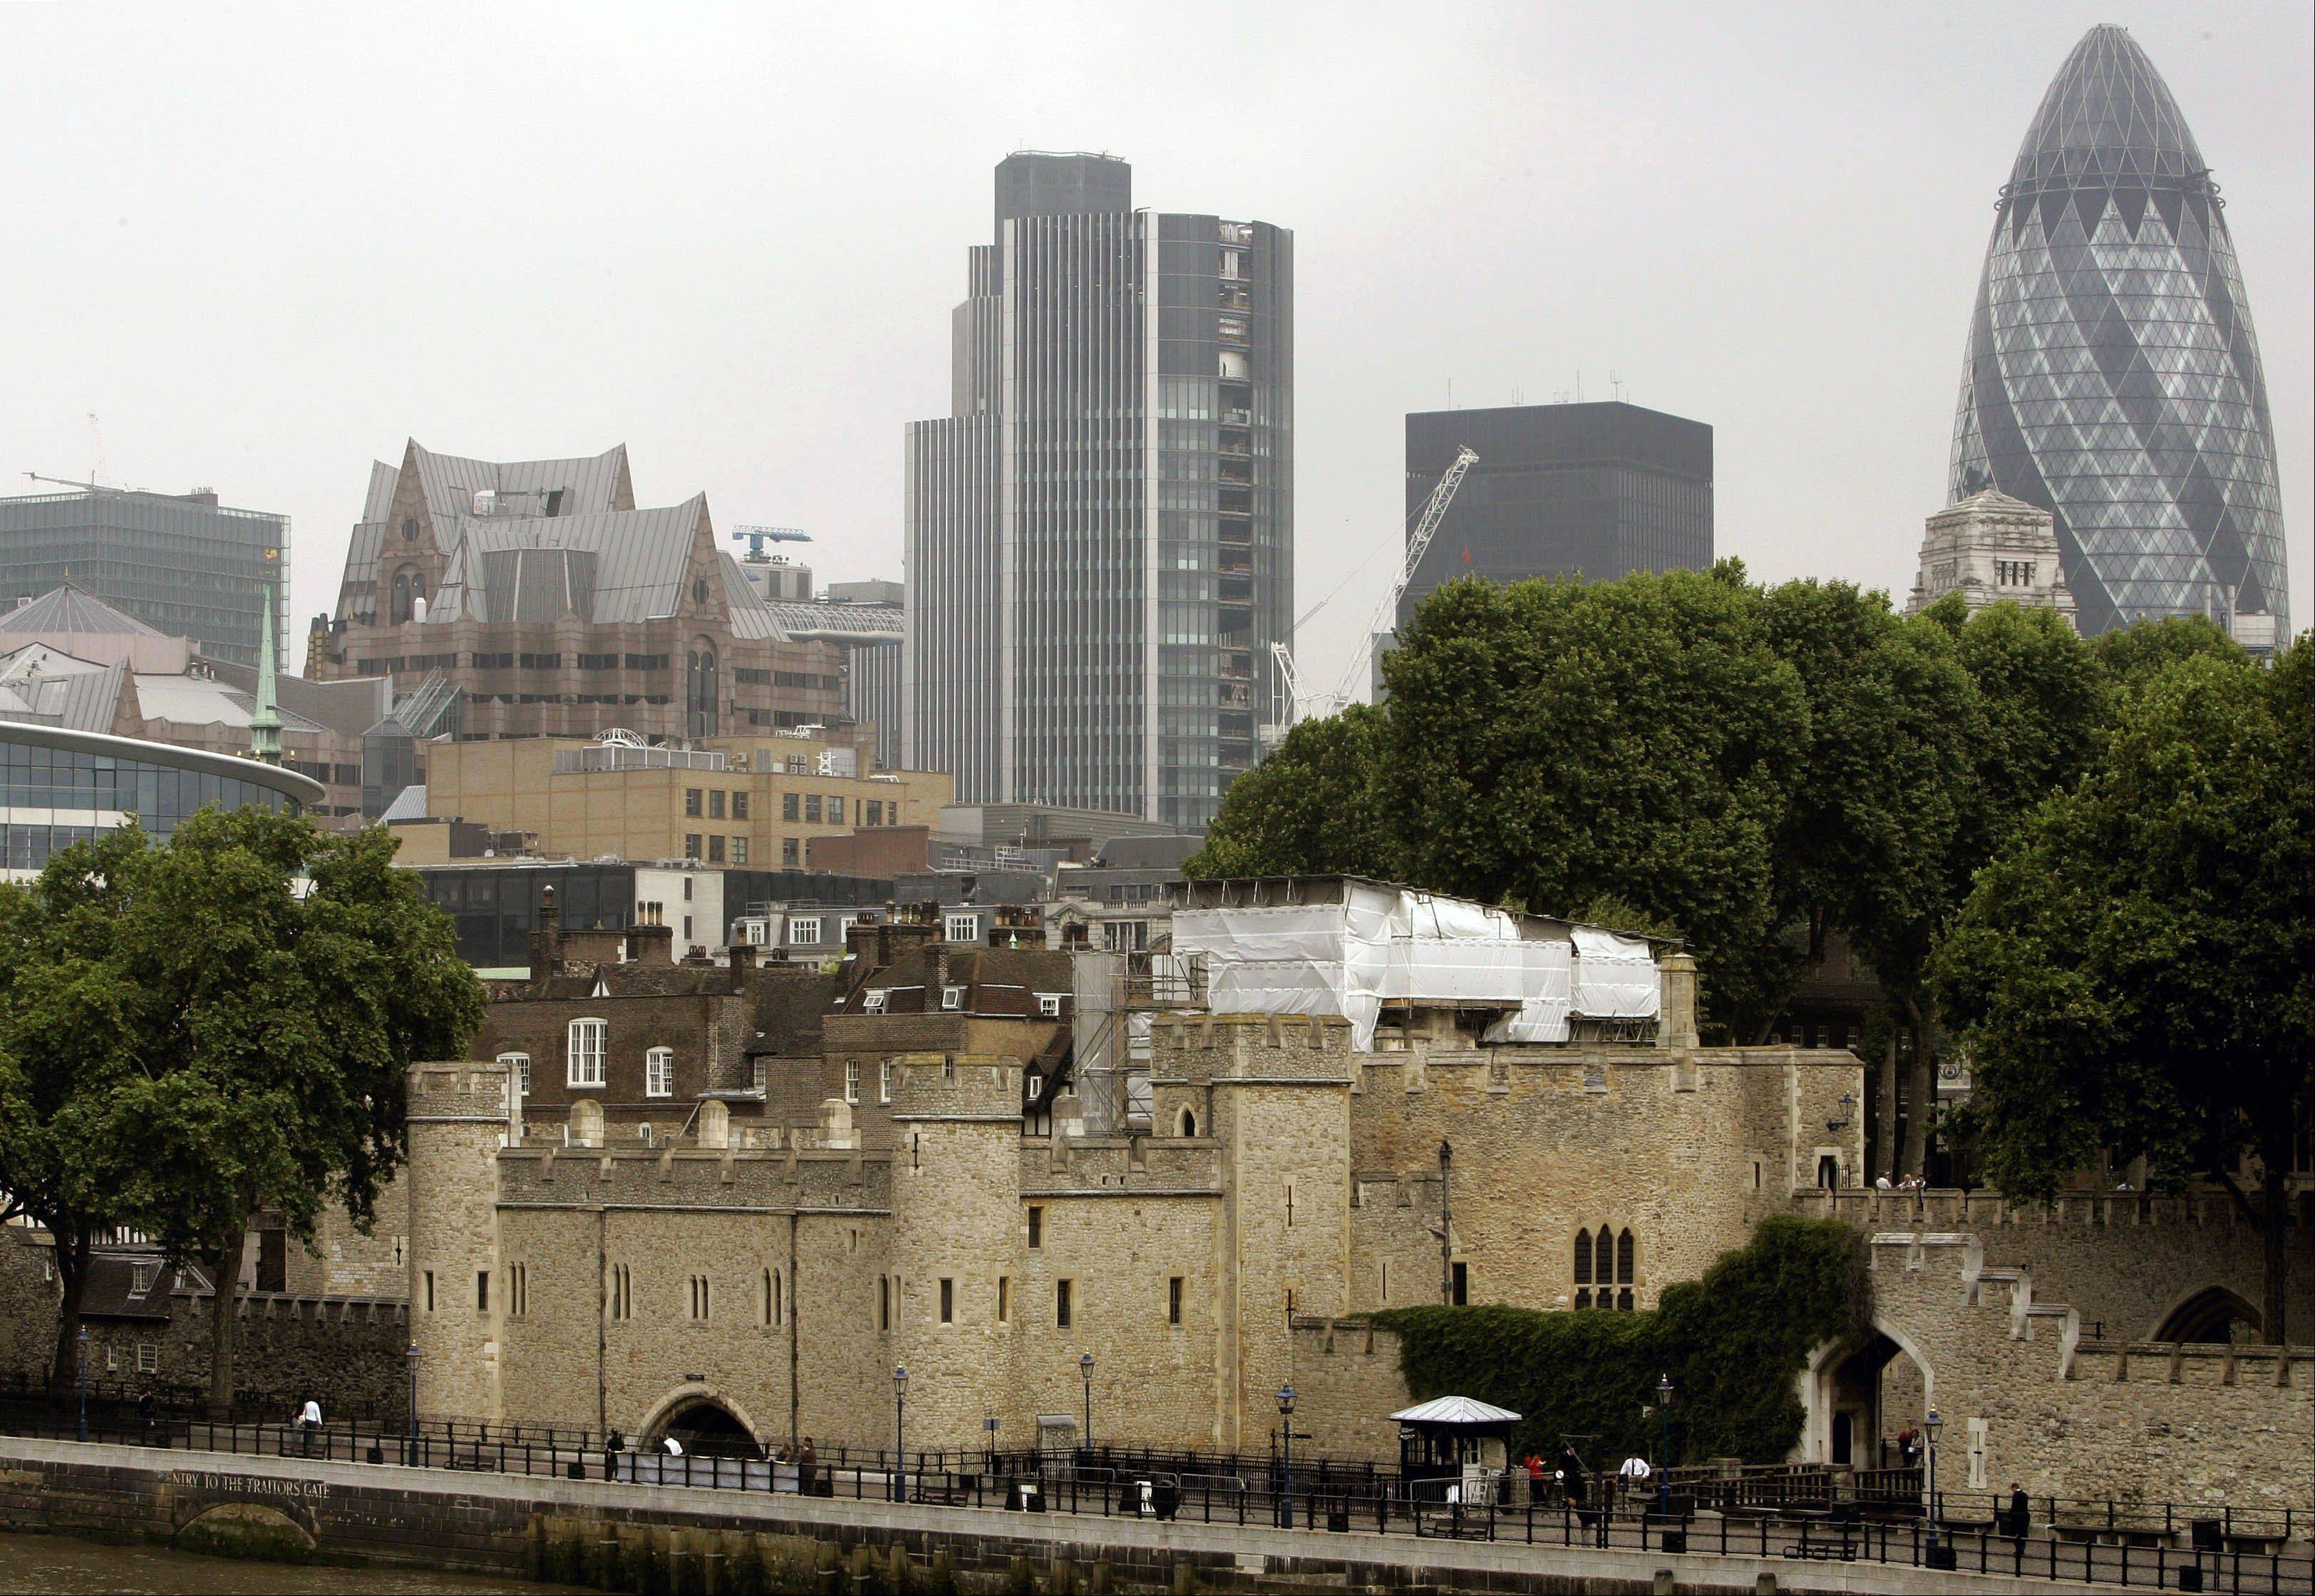 A rare security breach has been reported at the Tower of London, one of the British capital's most famous landmarks. Authorities say the Crown Jewels and other unique artifacts are safe but that locks had to be changed after an intruder broke in and stole some keys.